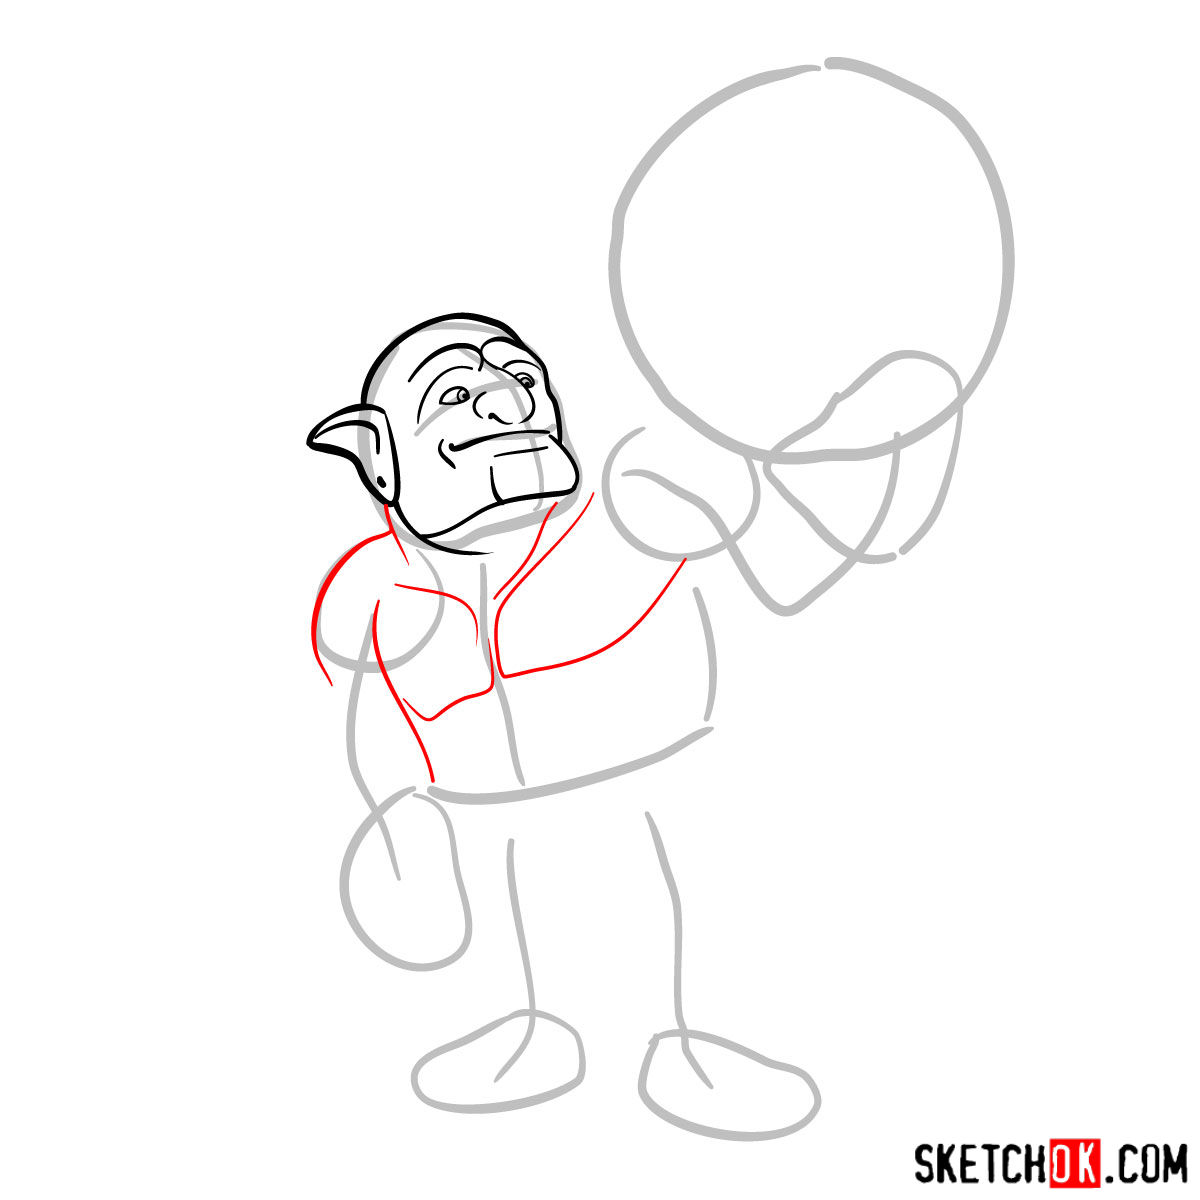 How to draw Bowler from Clash of Clans - step 03